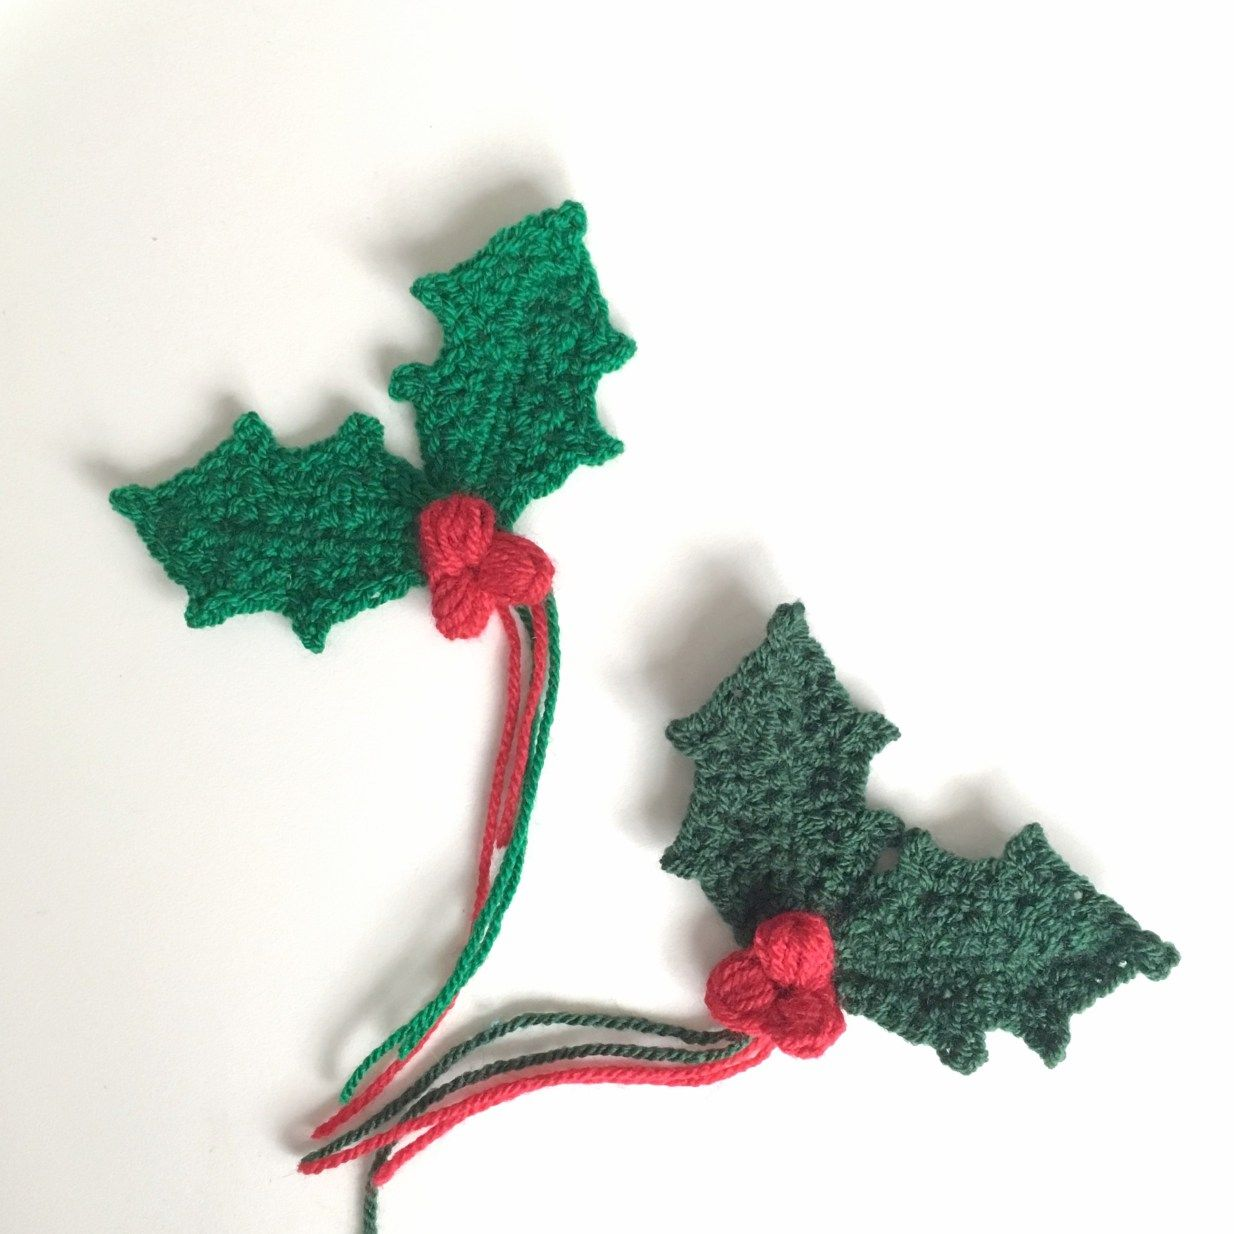 Holly Sprig With Berries - Free Crochet Pattern & Tutorial   Crochet ...